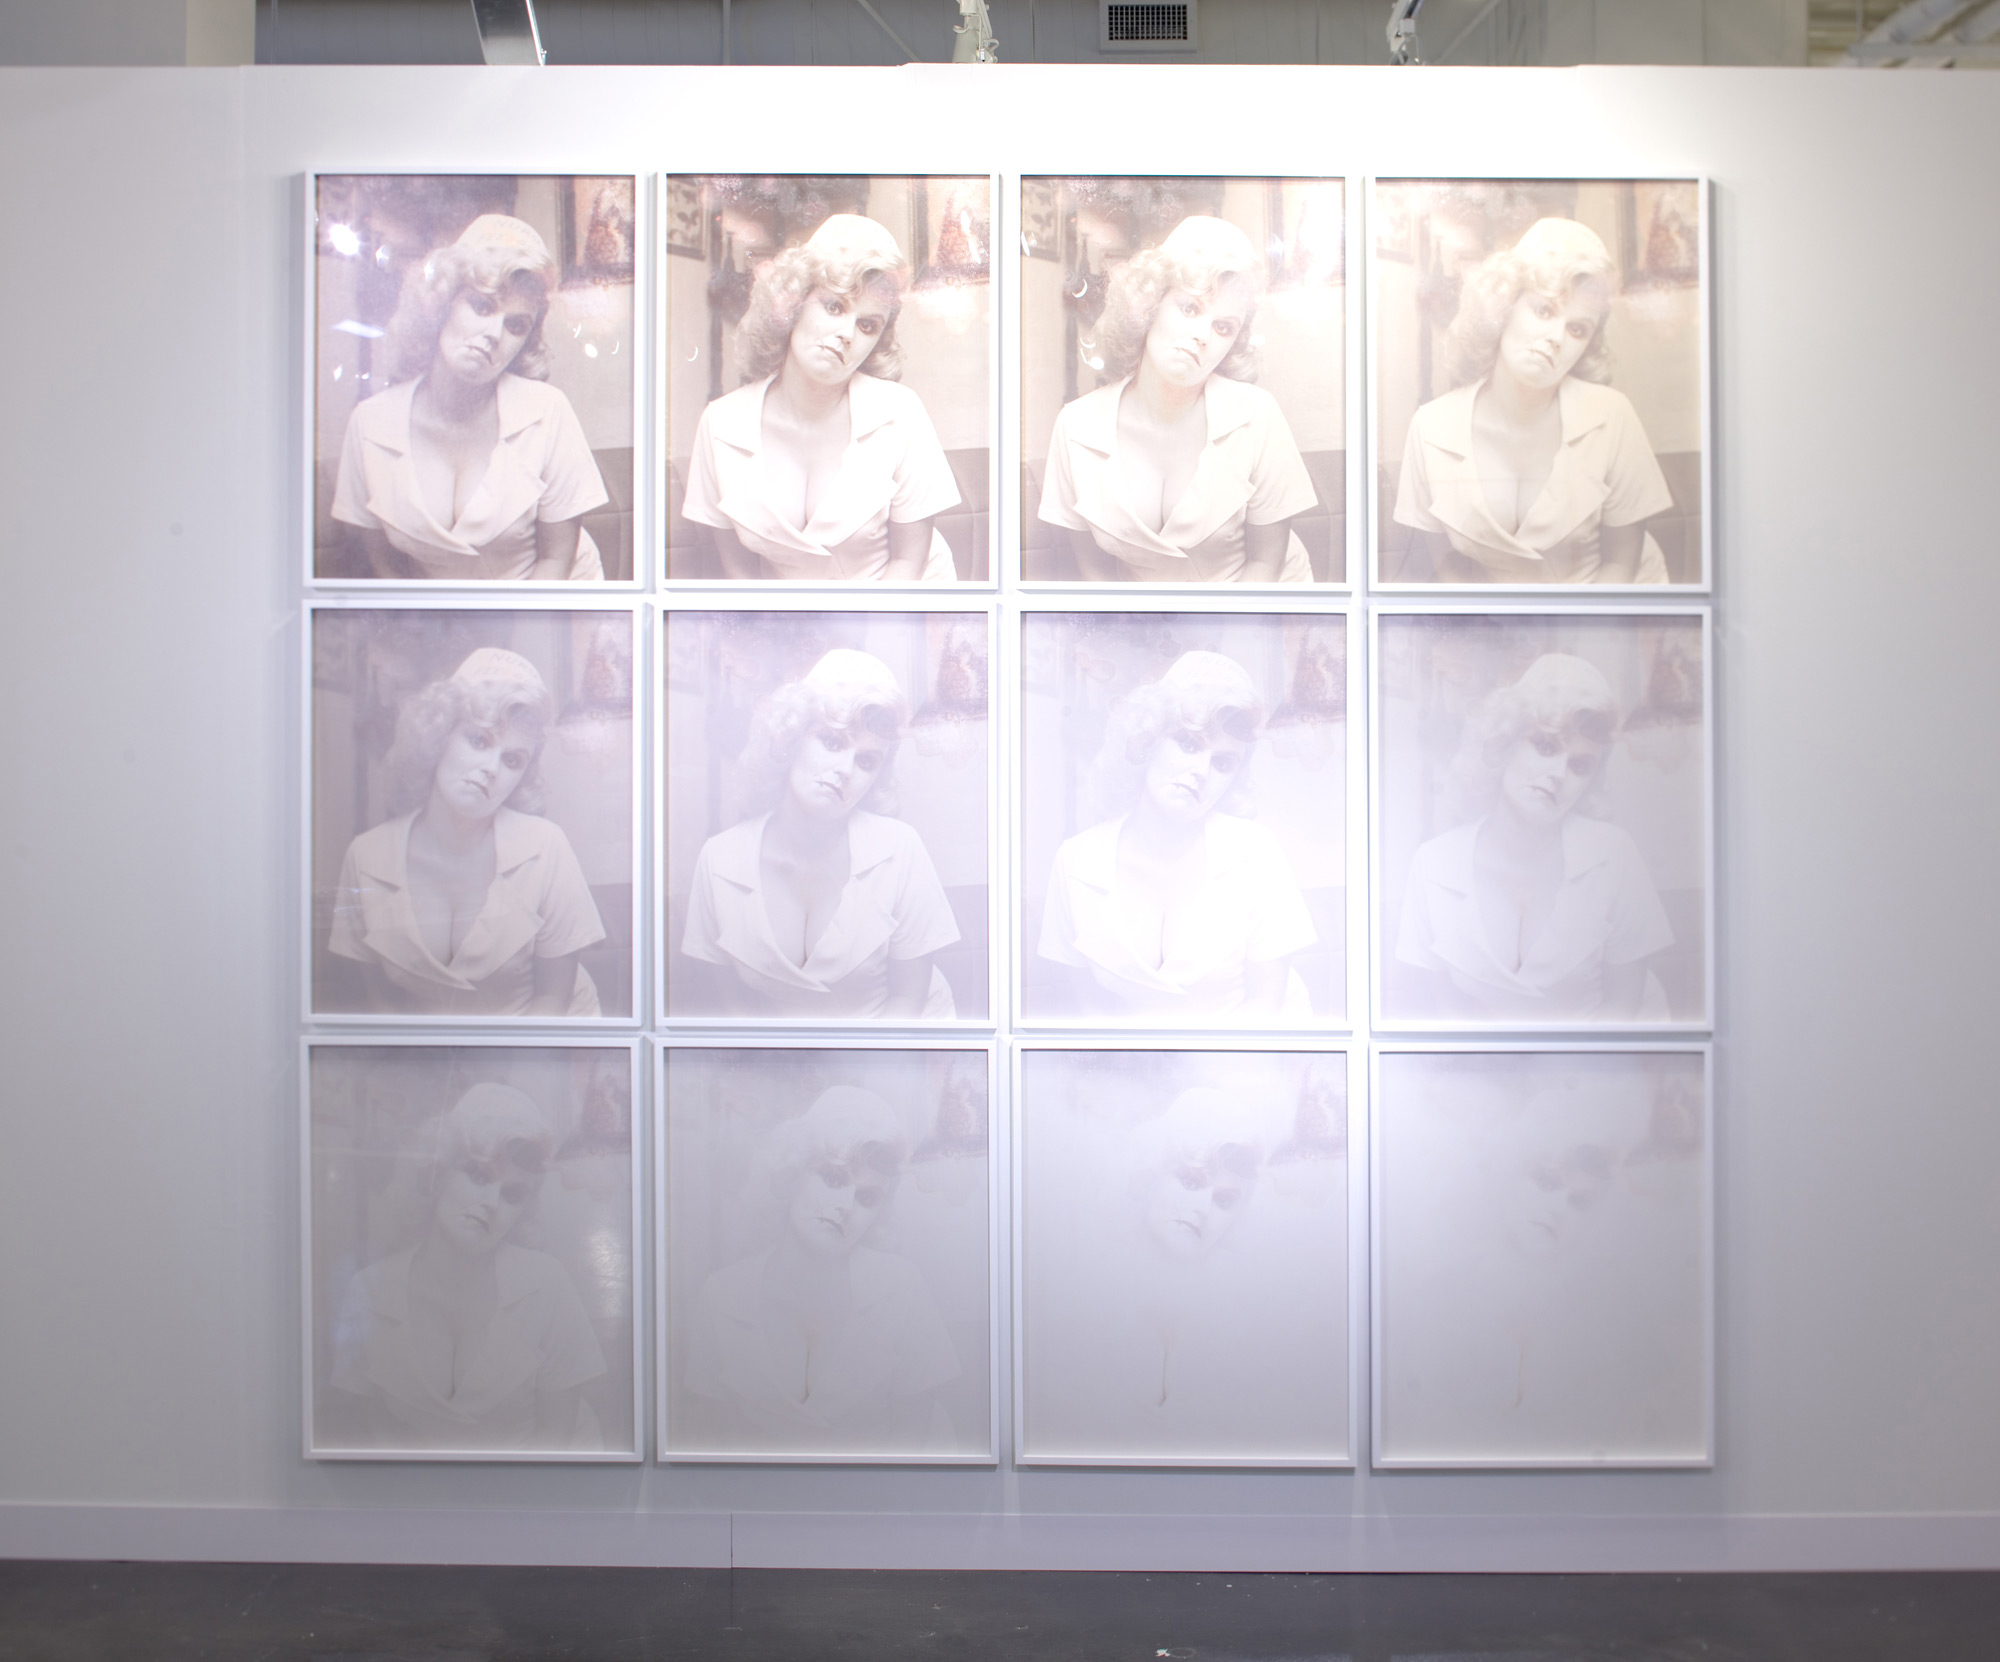 Art Platform 2011, Disappeared Nurse Series for Aperture Editions no.1-12